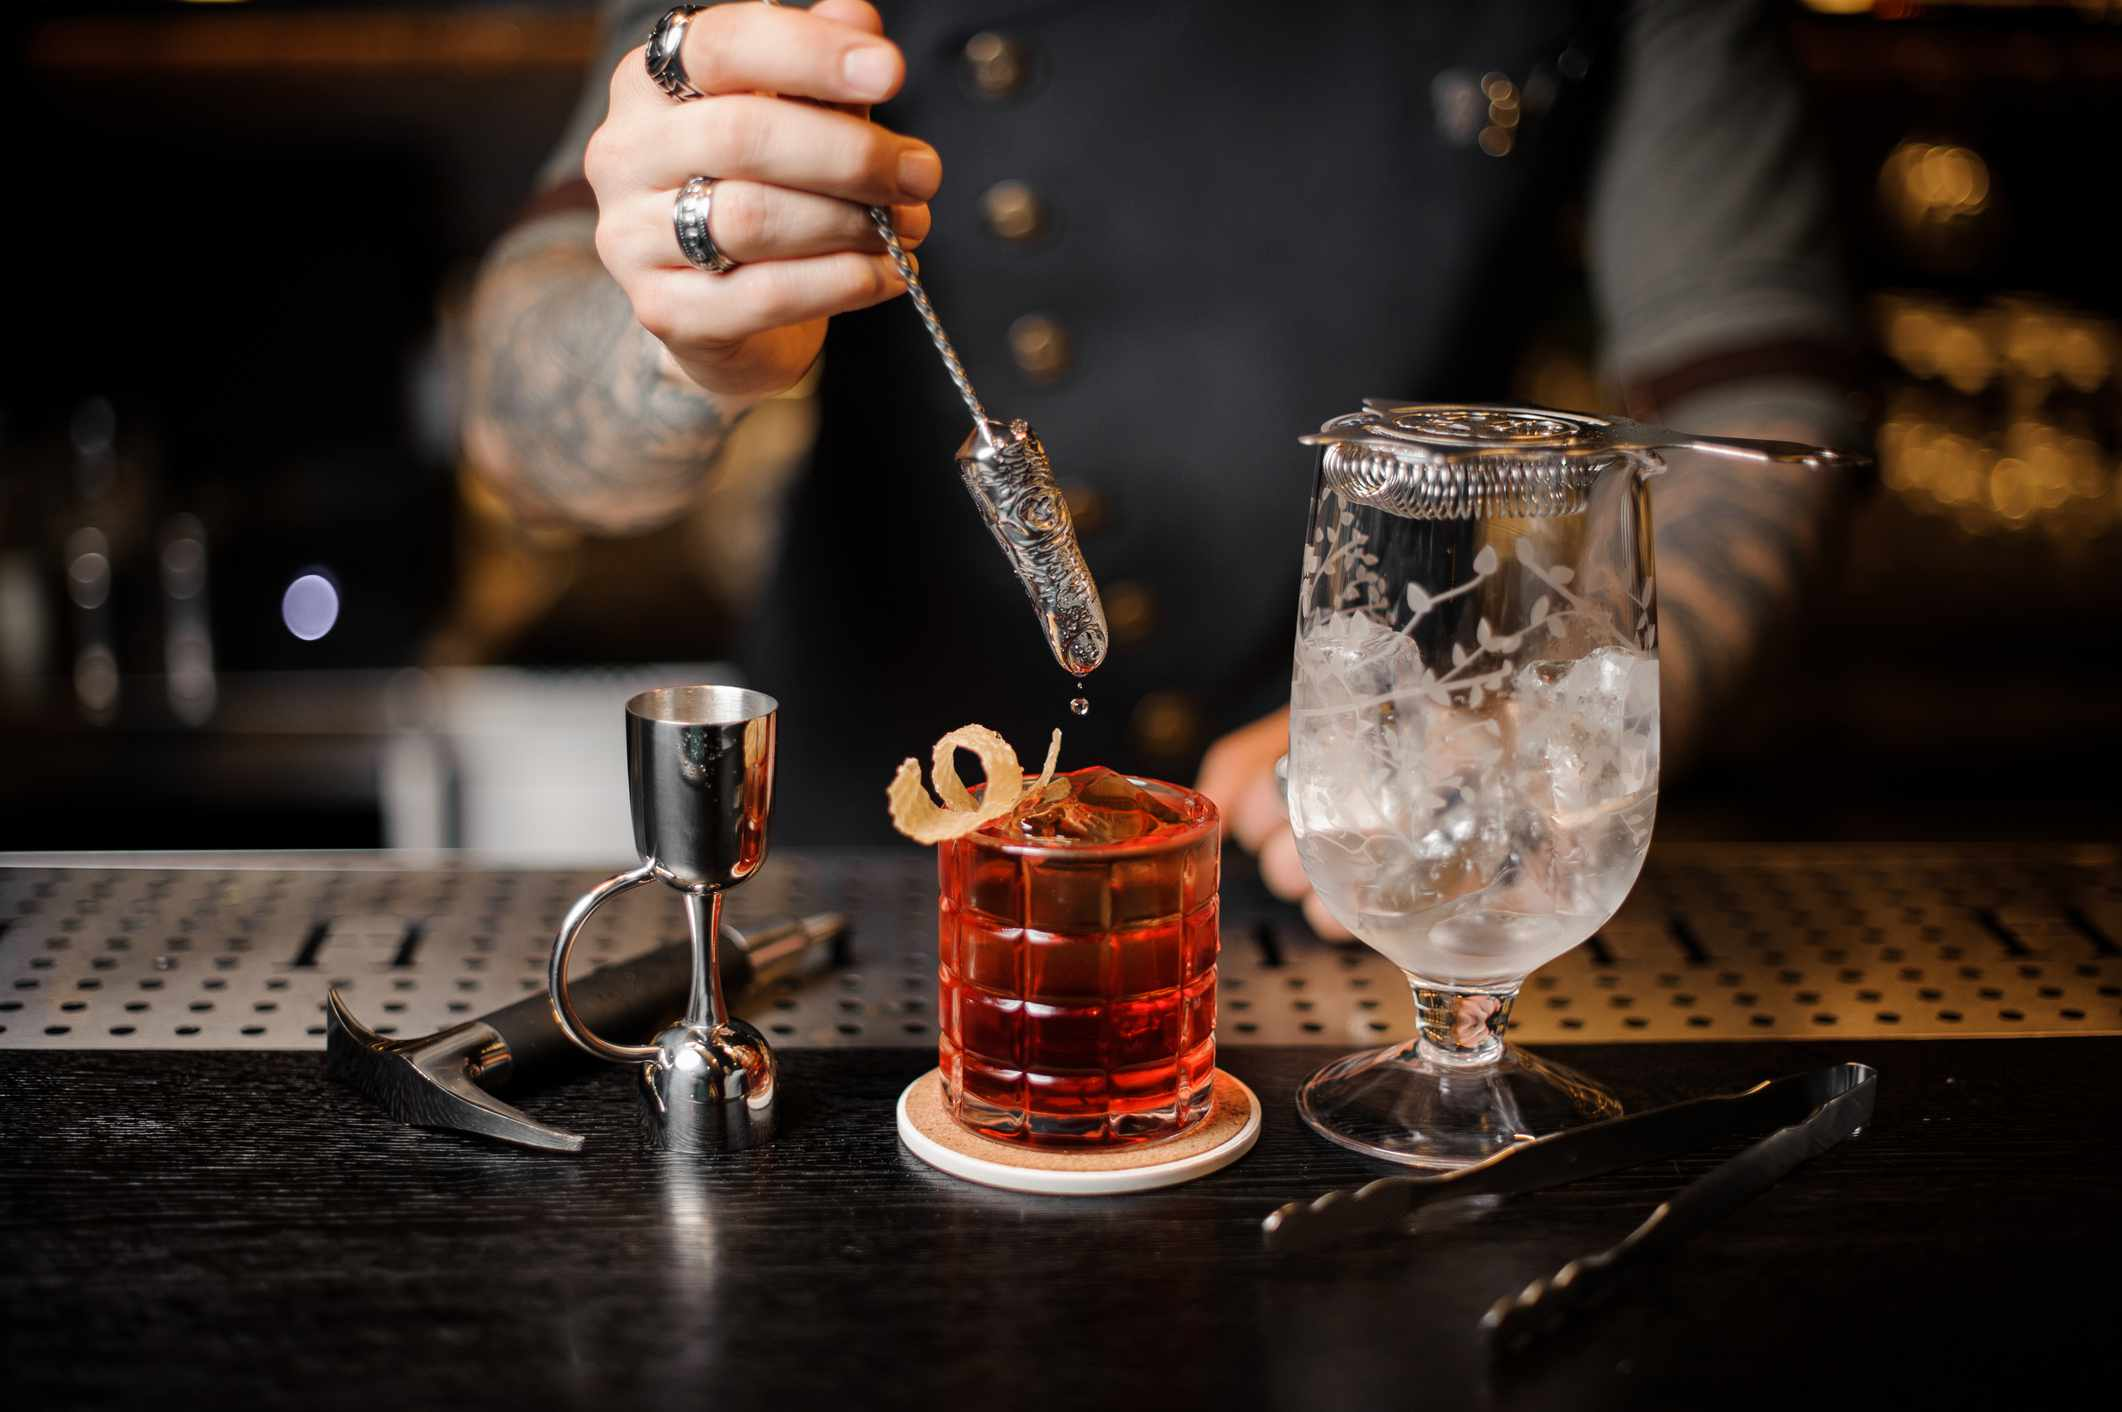 Bartender makes an Old Fashion cocktail